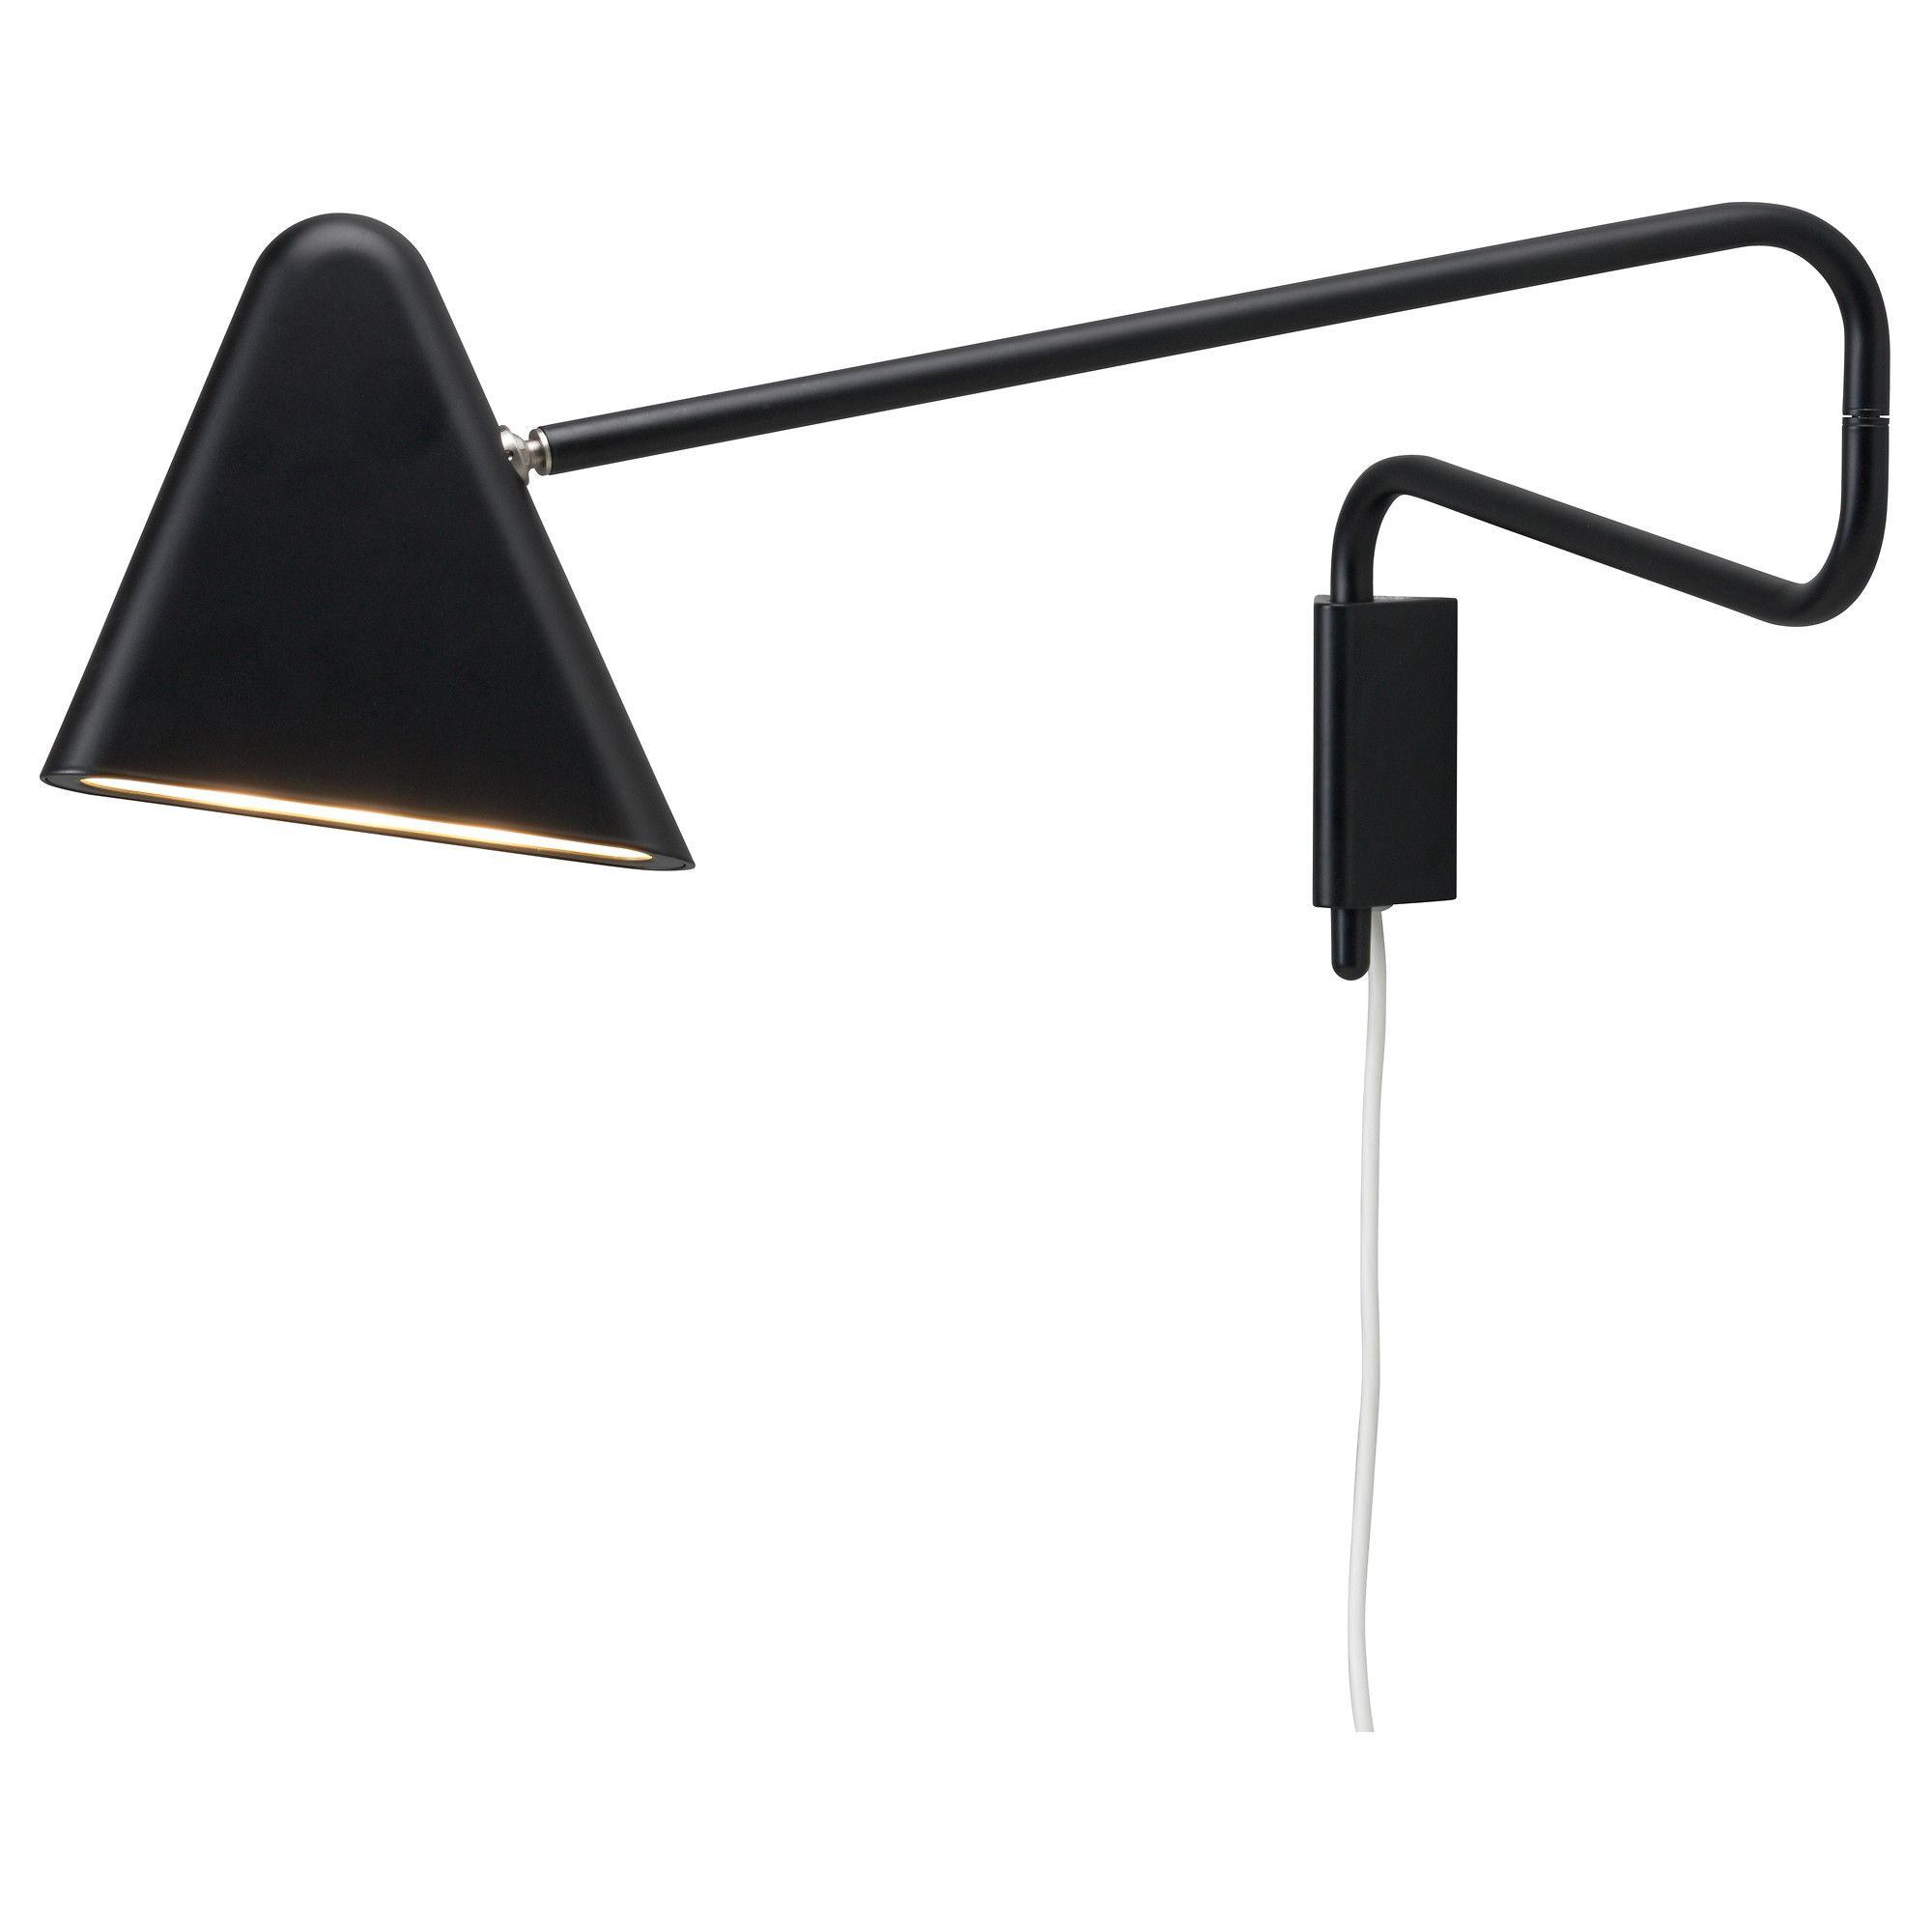 ikea ps 2012 led wall lamp - black - ikeahttp://www.ikea/ca/en